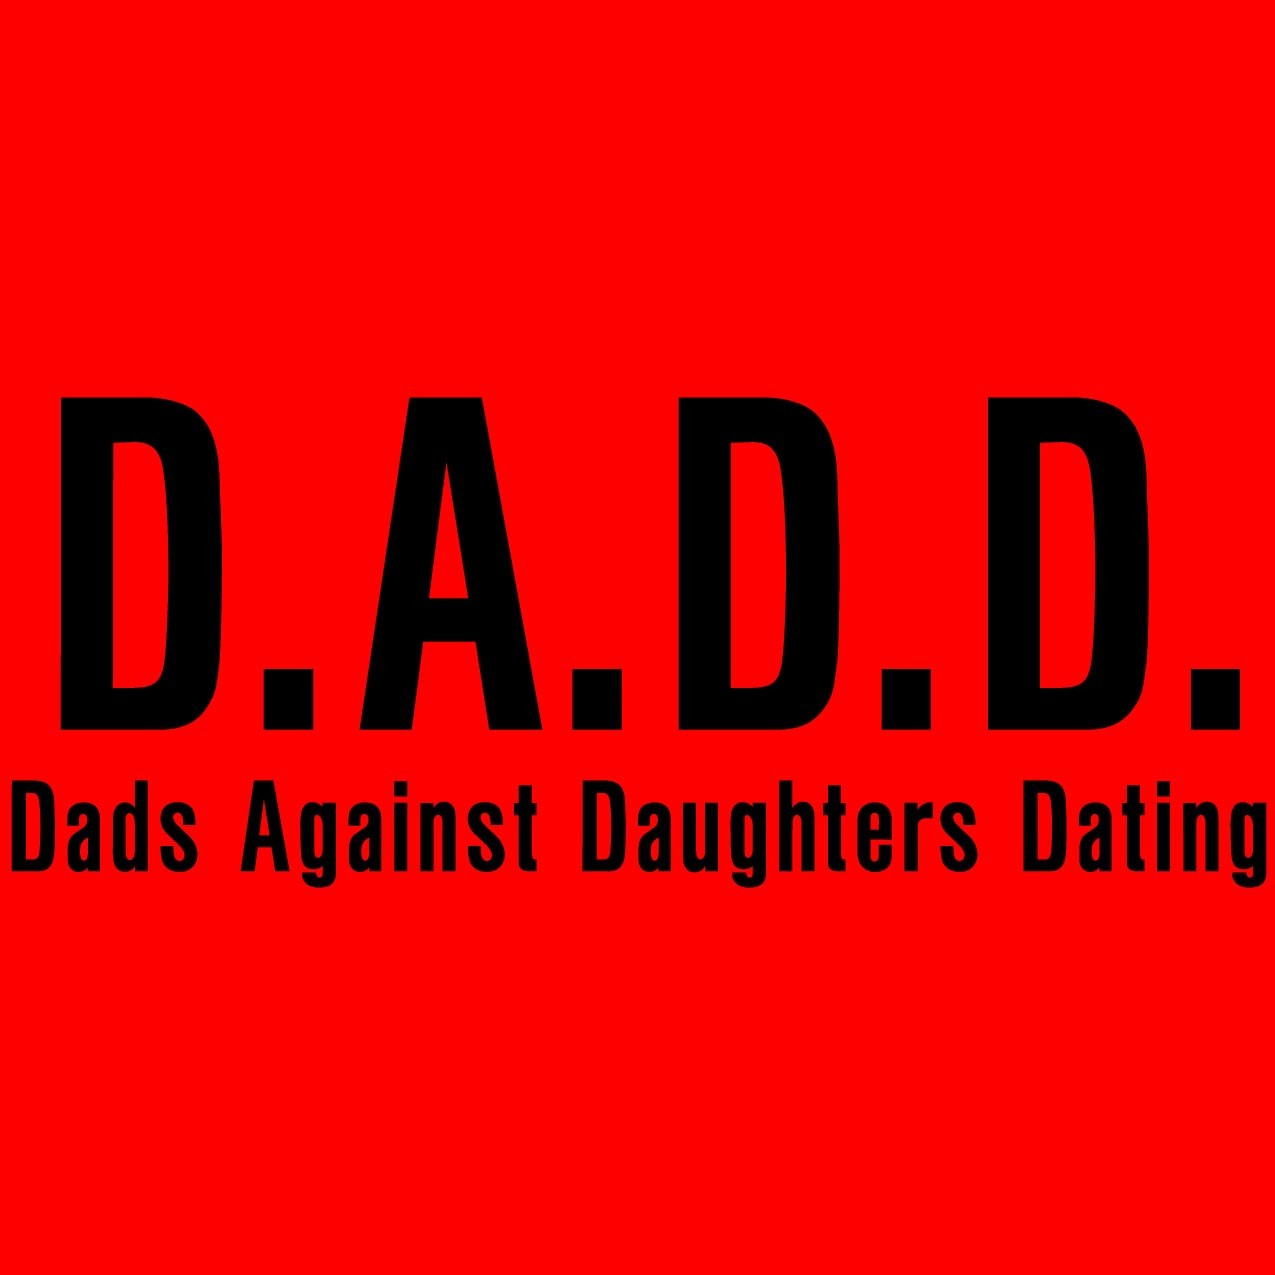 fathers against daughters dating